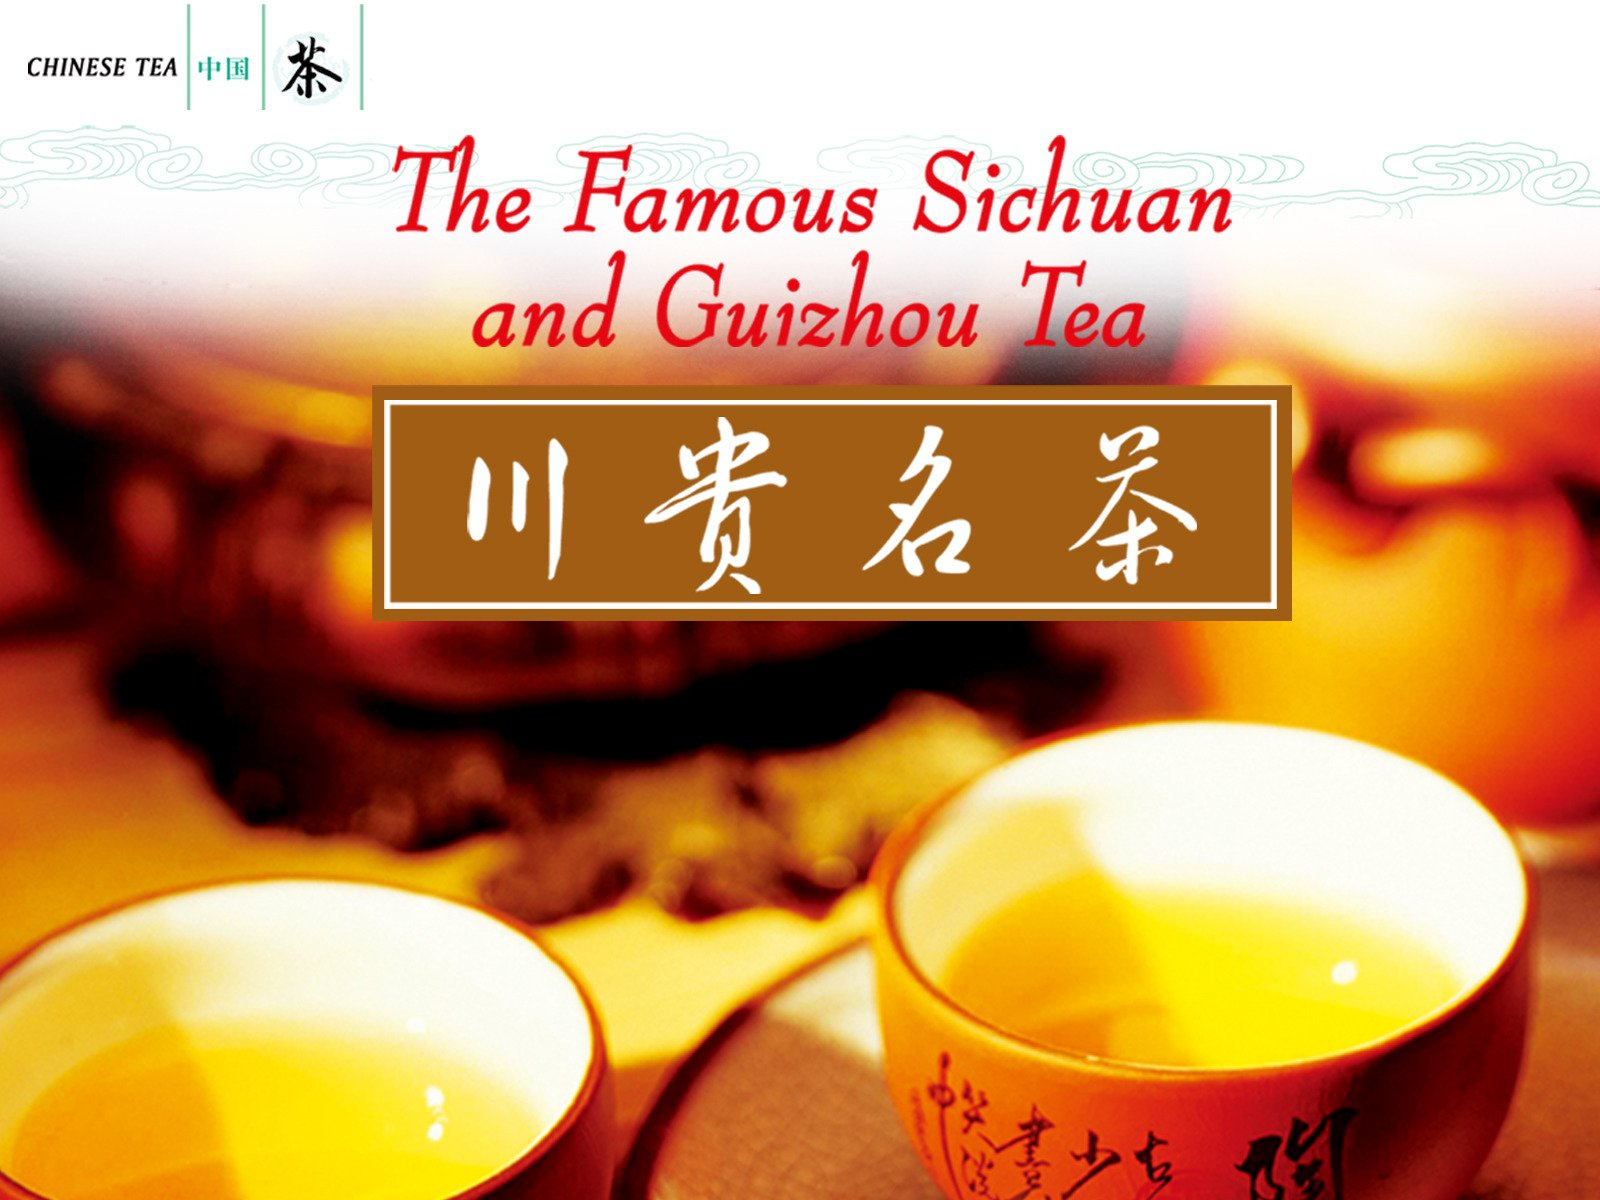 The Famous Sichuan and Guizhou Tea - Season 1